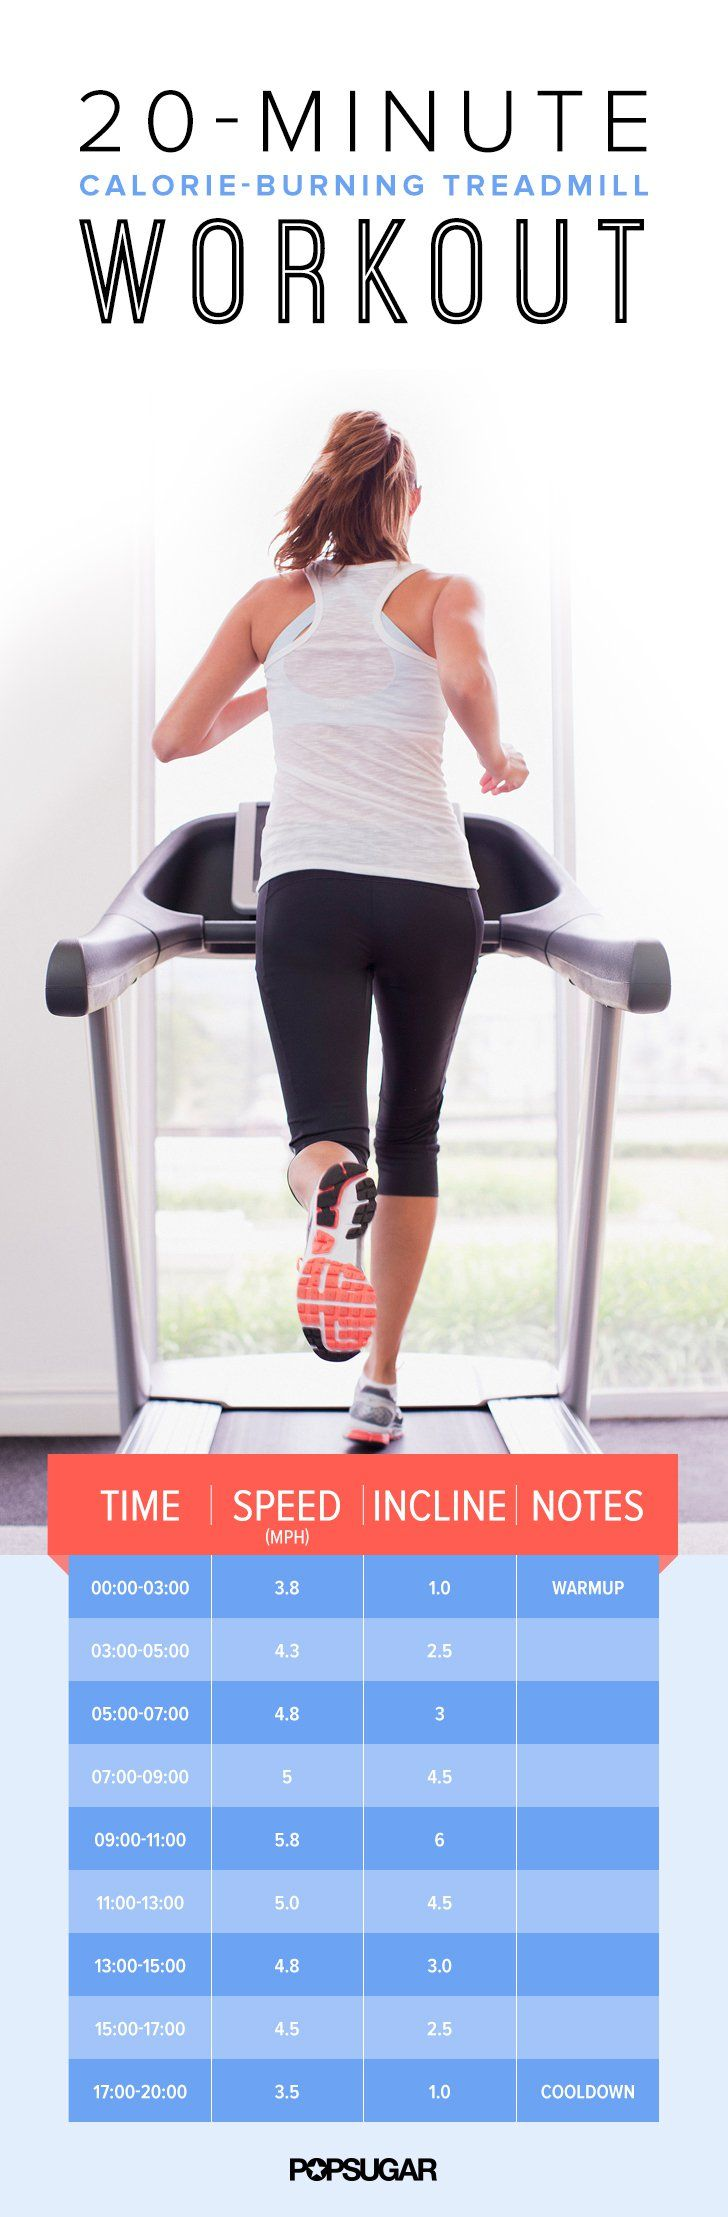 Pin for Later: A 20-Minute, Calorie-Burning Treadmill Workout